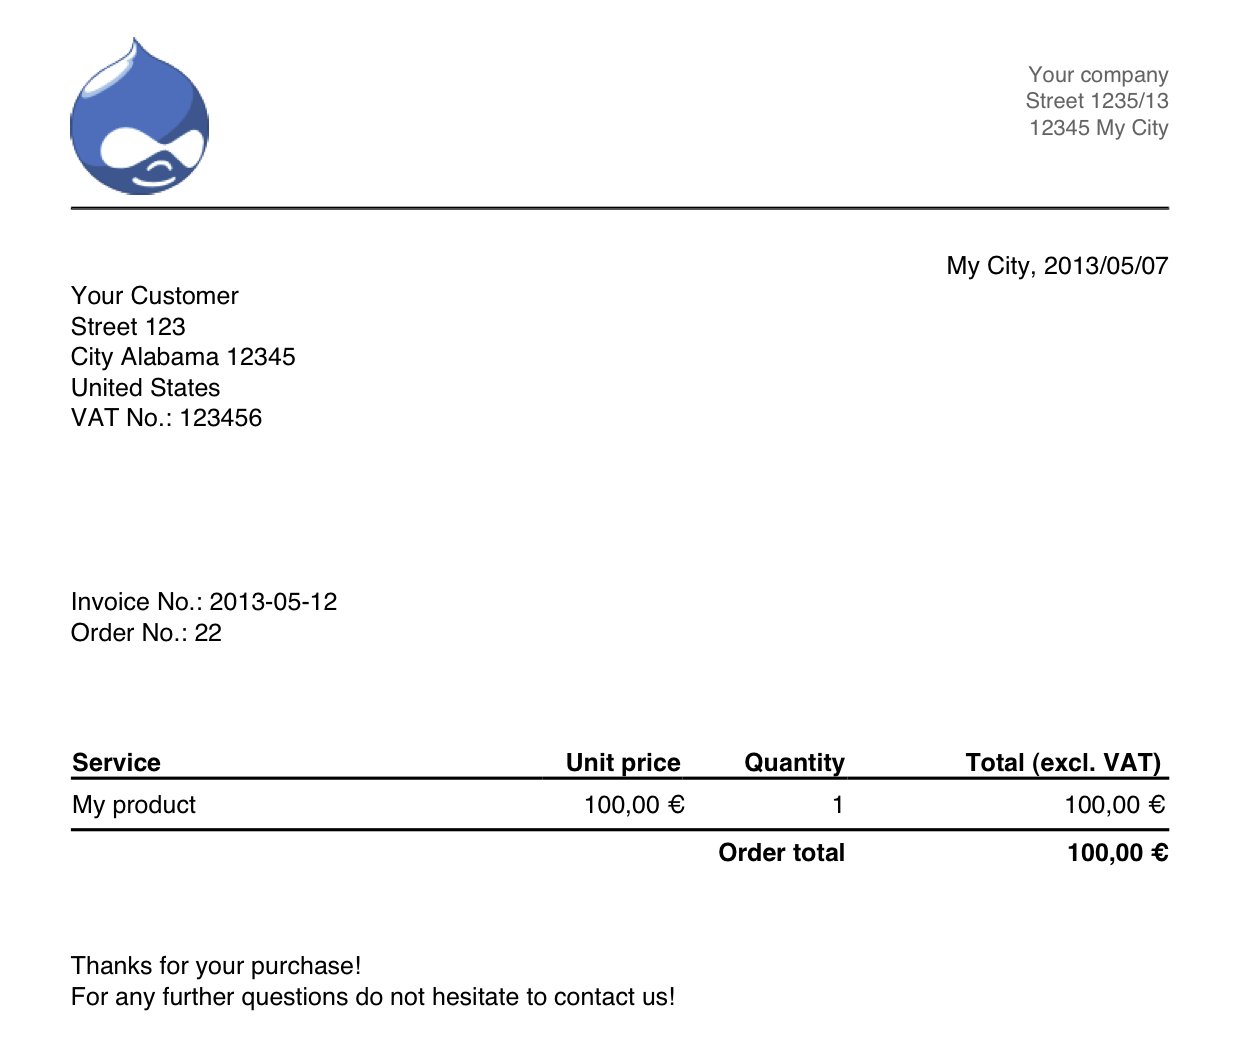 Occupyhistoryus  Pleasing Commerce Billy  Drupalorg With Luxury Commerce Billy Invoice Pdf Example With Enchanting Invoice Packing Slip Also Sage Line  Invoice Template In Addition Supplier Invoice Processing And Car Rental Invoice Format As Well As Invoice Excel Sheet Additionally How To Find Out Invoice Price Of A New Car From Drupalorg With Occupyhistoryus  Luxury Commerce Billy  Drupalorg With Enchanting Commerce Billy Invoice Pdf Example And Pleasing Invoice Packing Slip Also Sage Line  Invoice Template In Addition Supplier Invoice Processing From Drupalorg